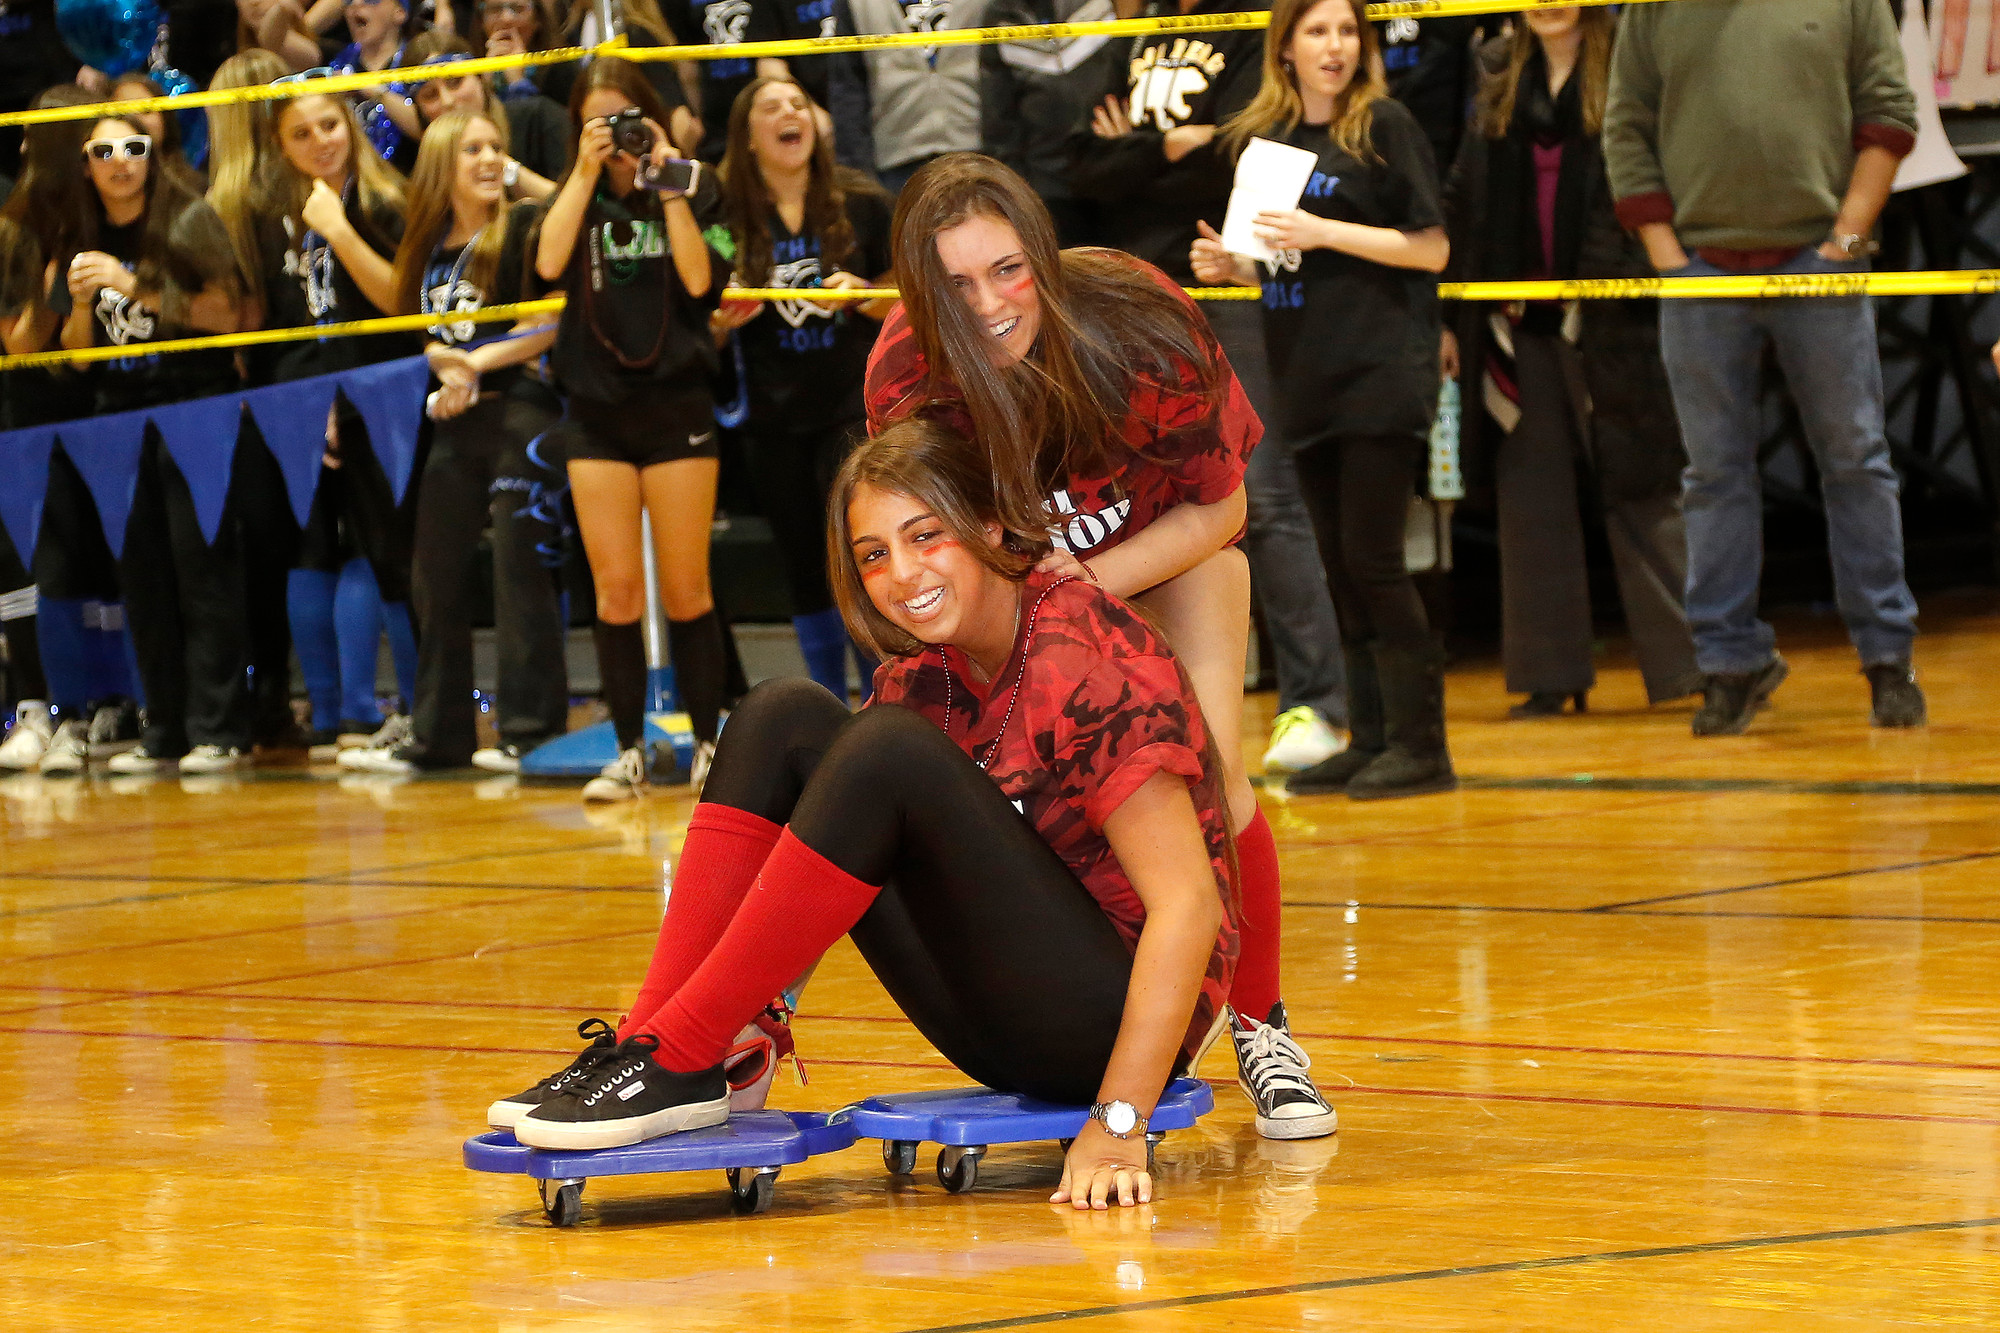 Juniors Samantha Pellegrino and Sara Hayes competed in a relay.